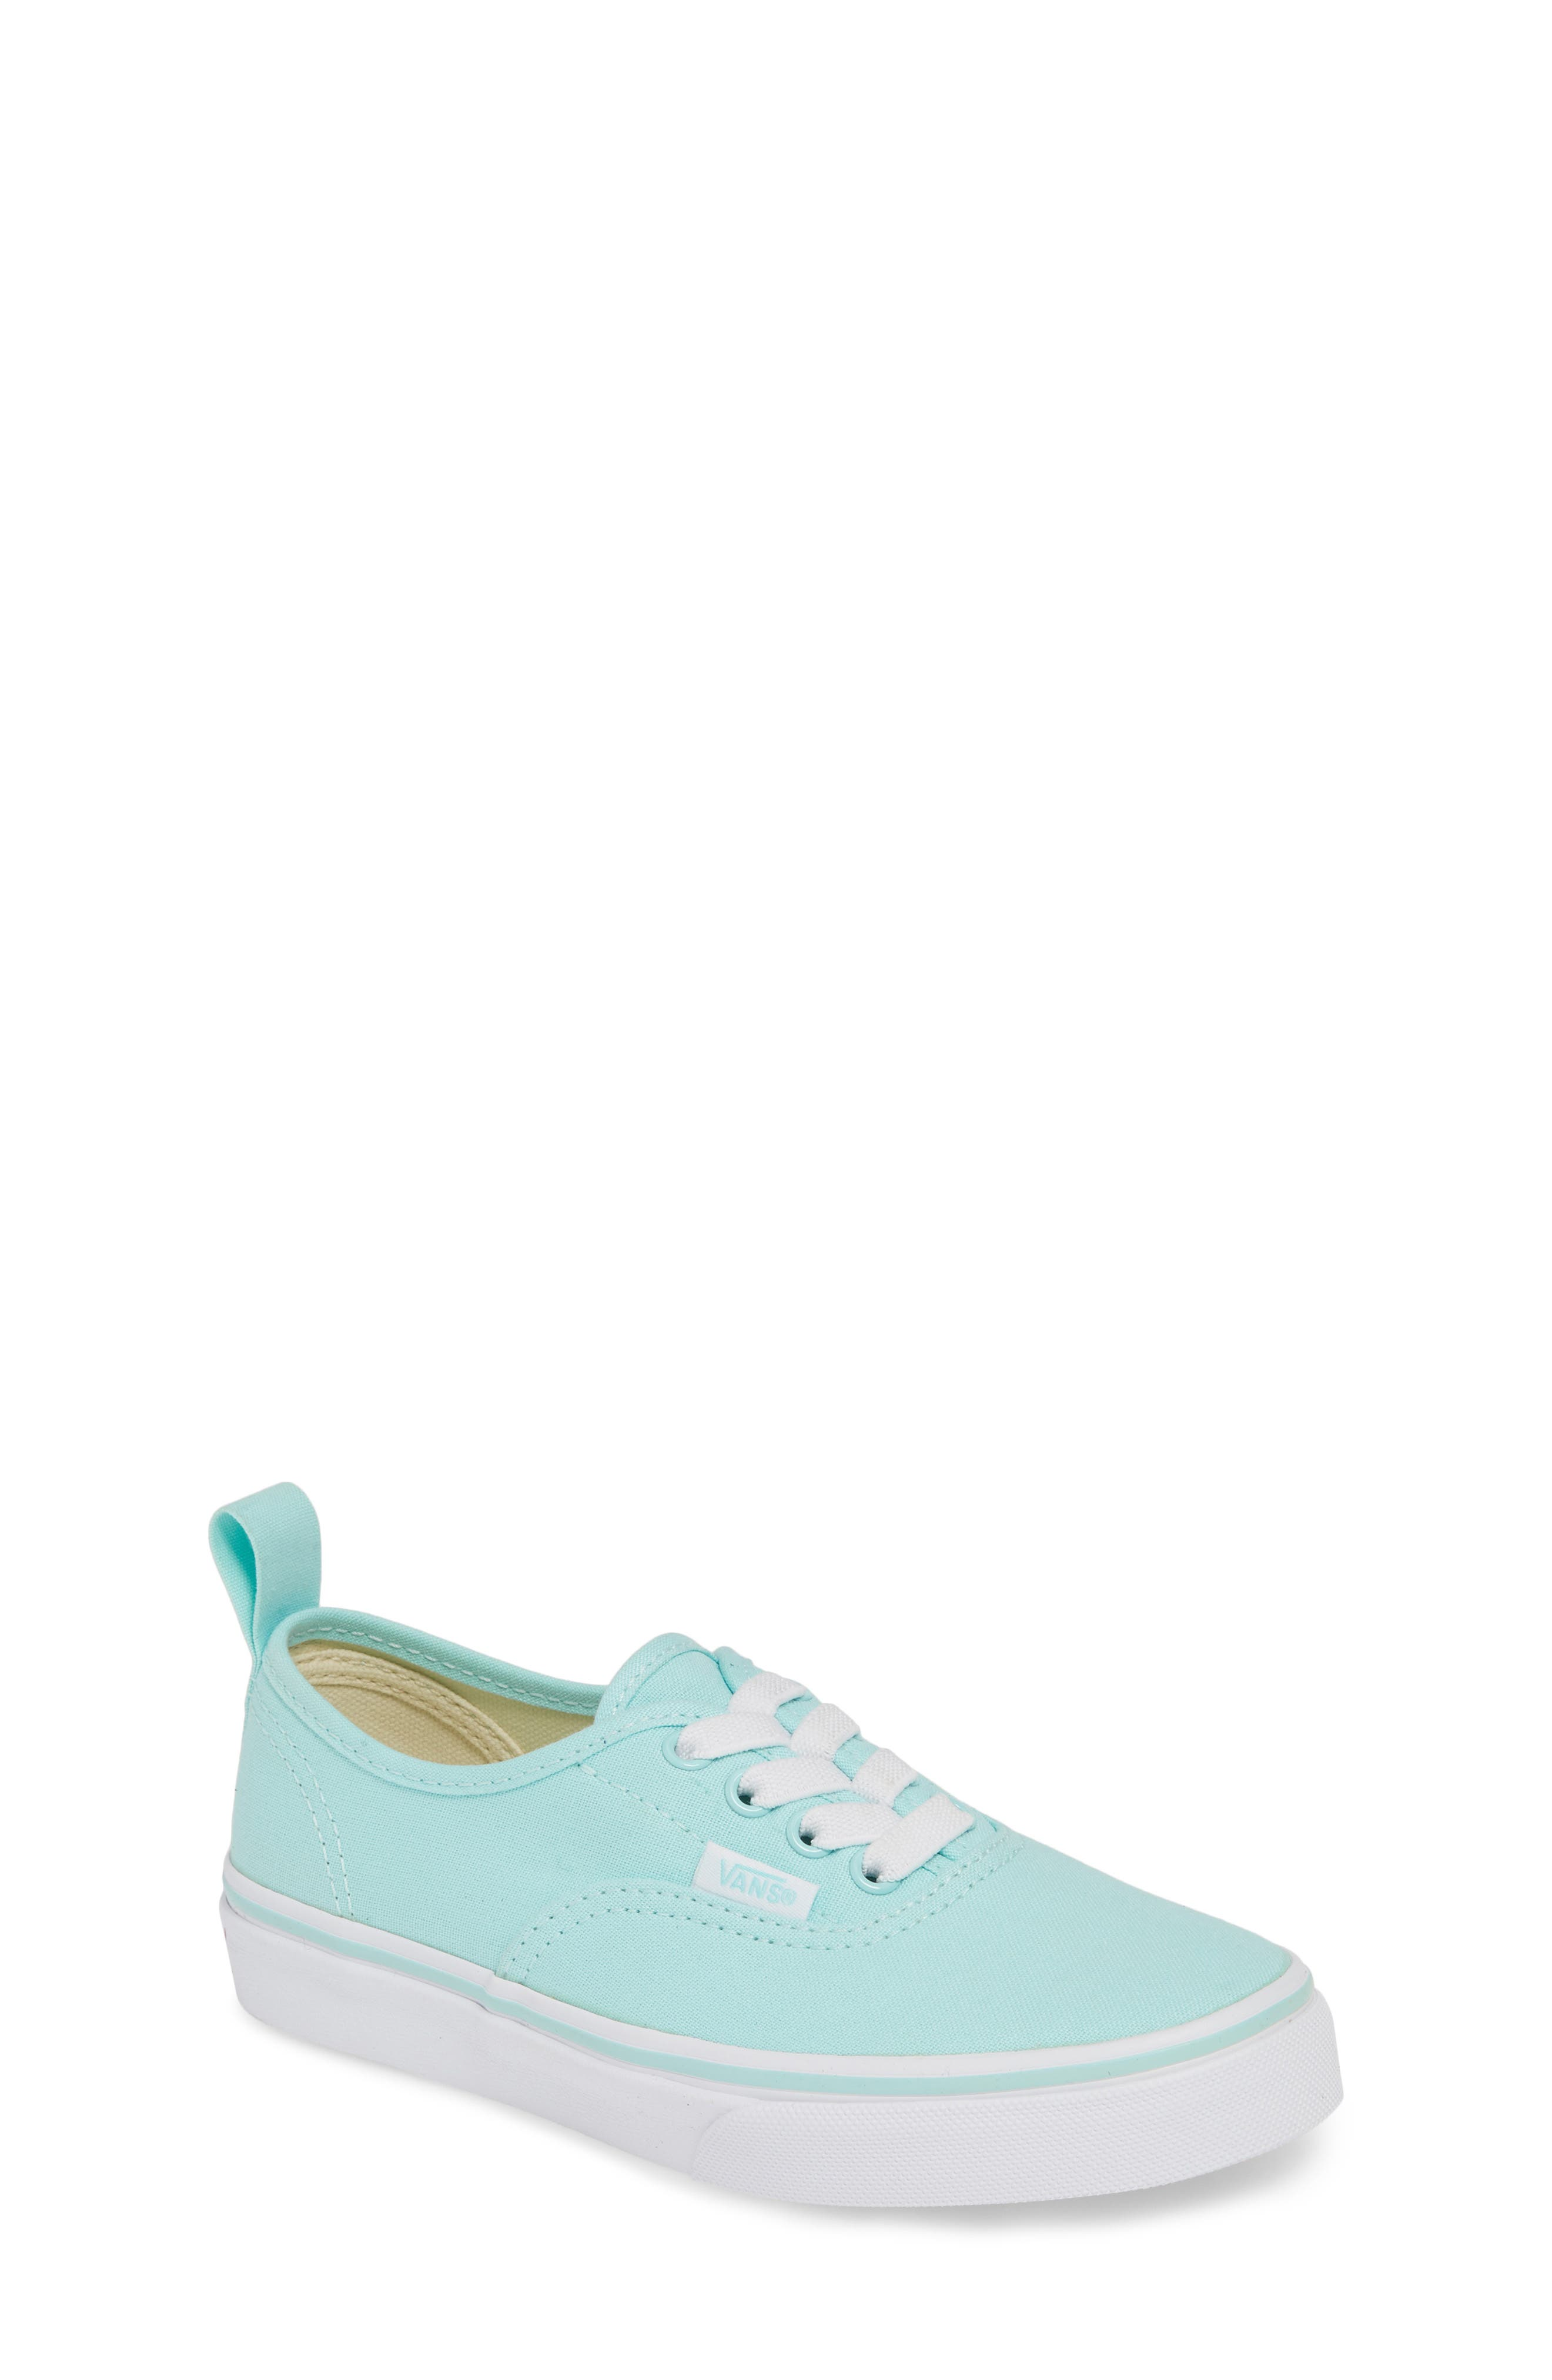 VANS, Authentic Sneaker, Main thumbnail 1, color, BLUE TINT/ TRUE WHITE